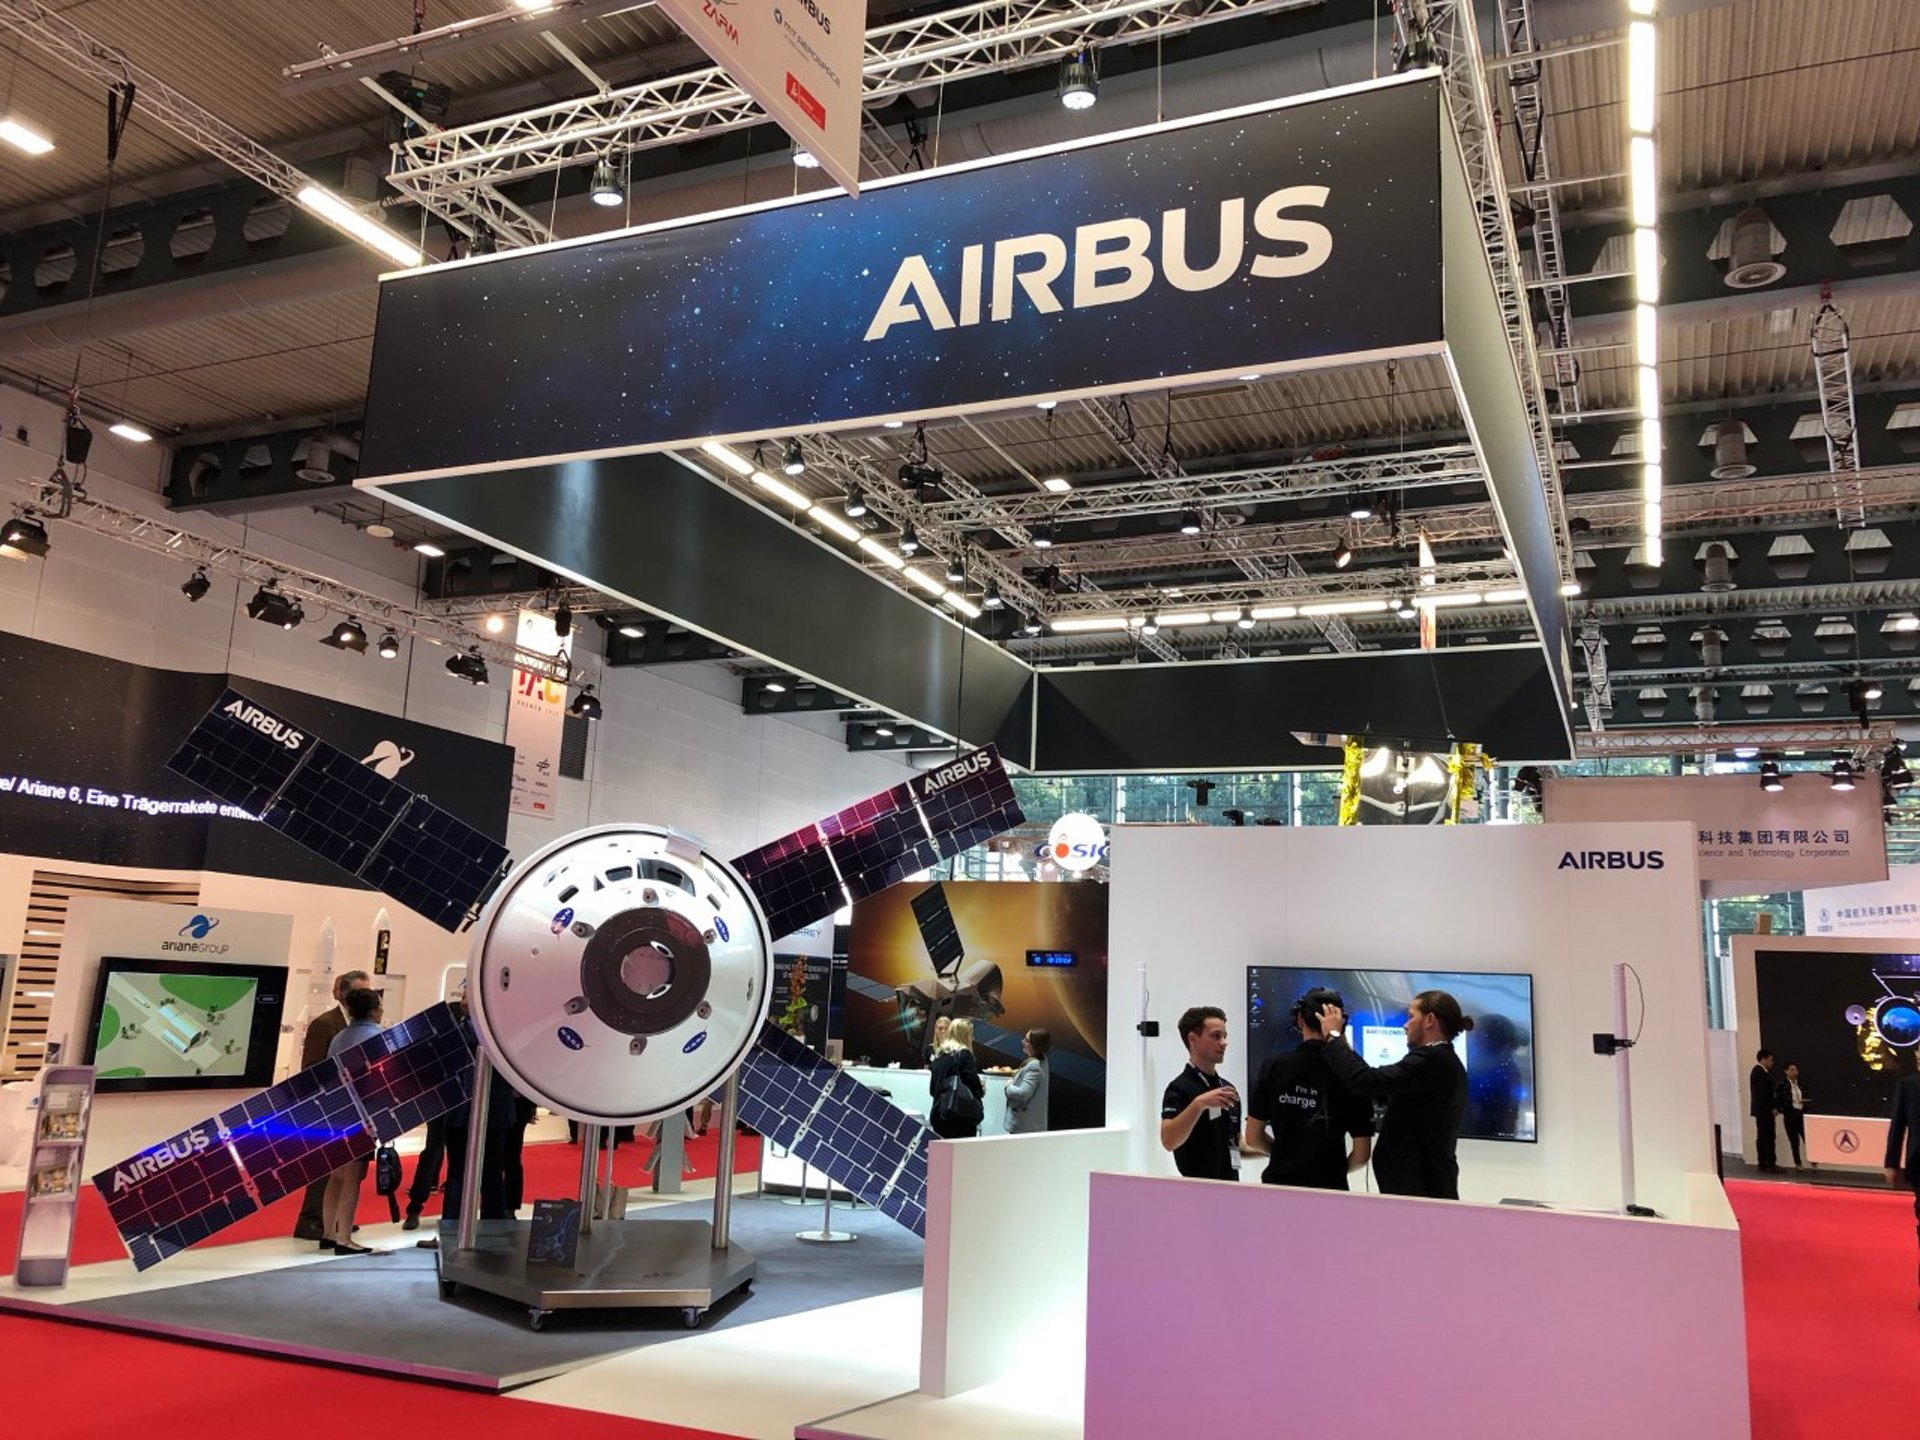 Airbus is part of the 69th International Astronautical Congress edition to show all its exciting space projects